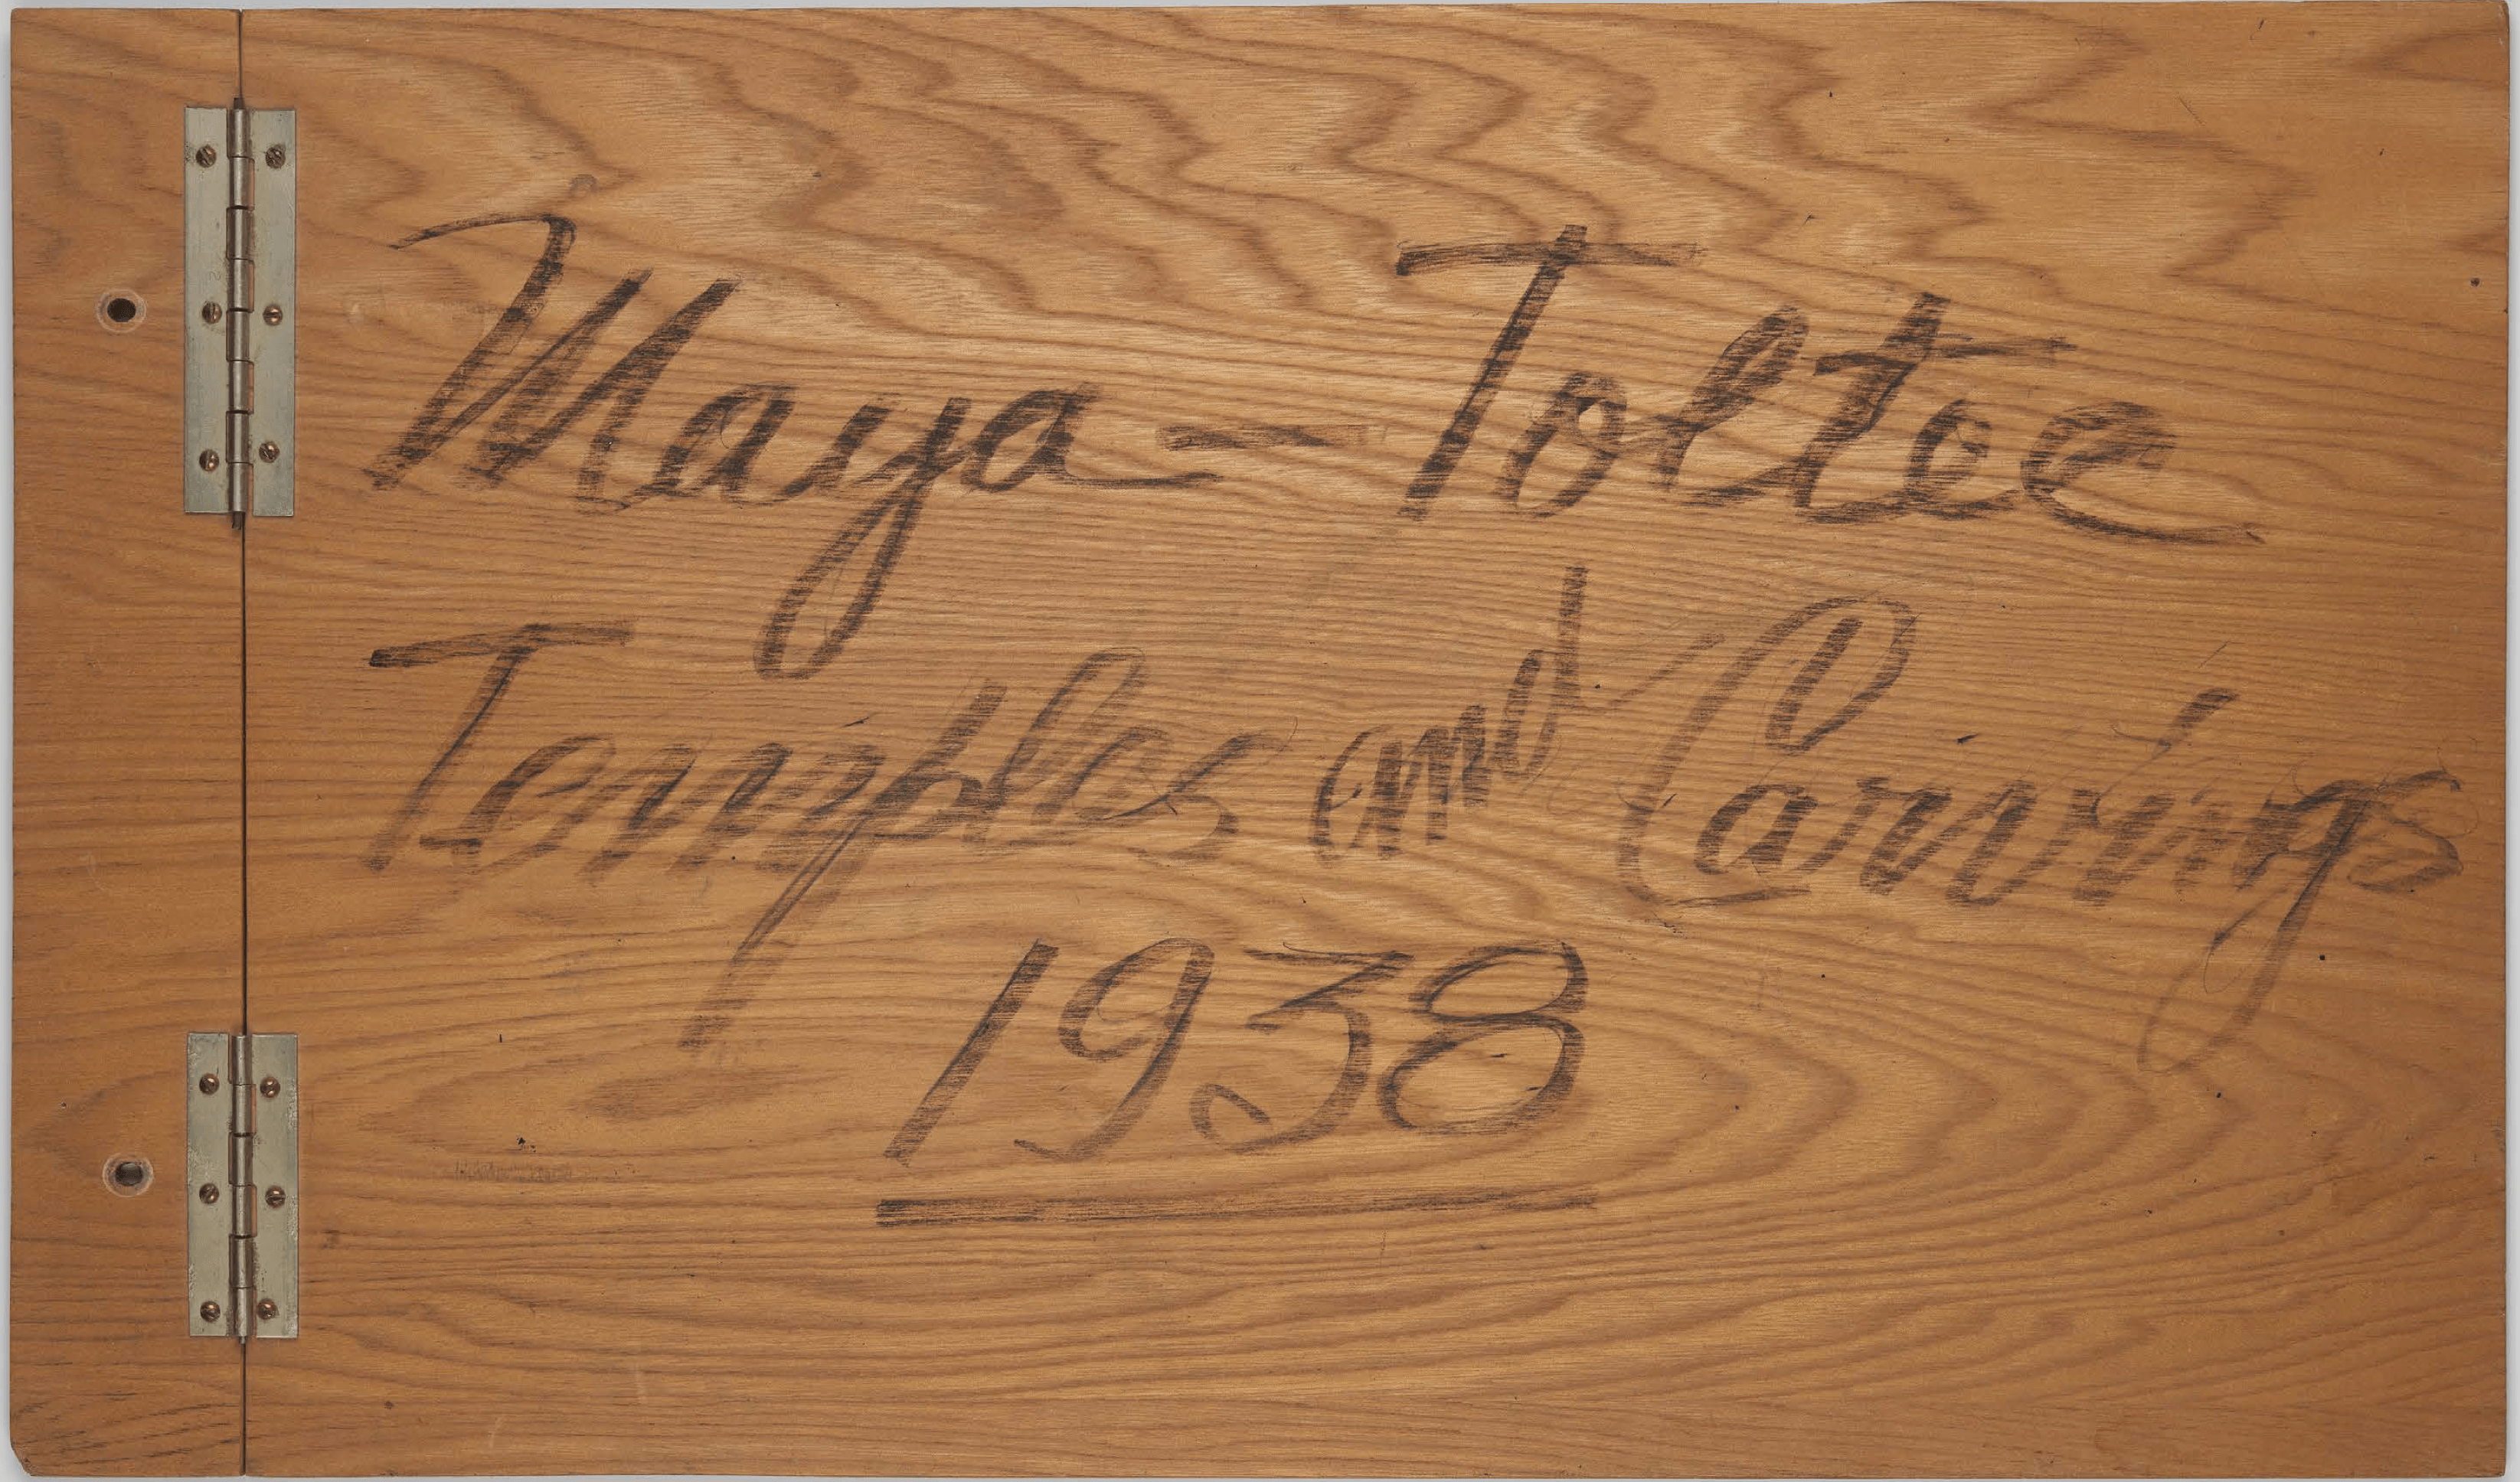 Cover of the scrapbook Maya Toltec Temples and Carvings, 1938